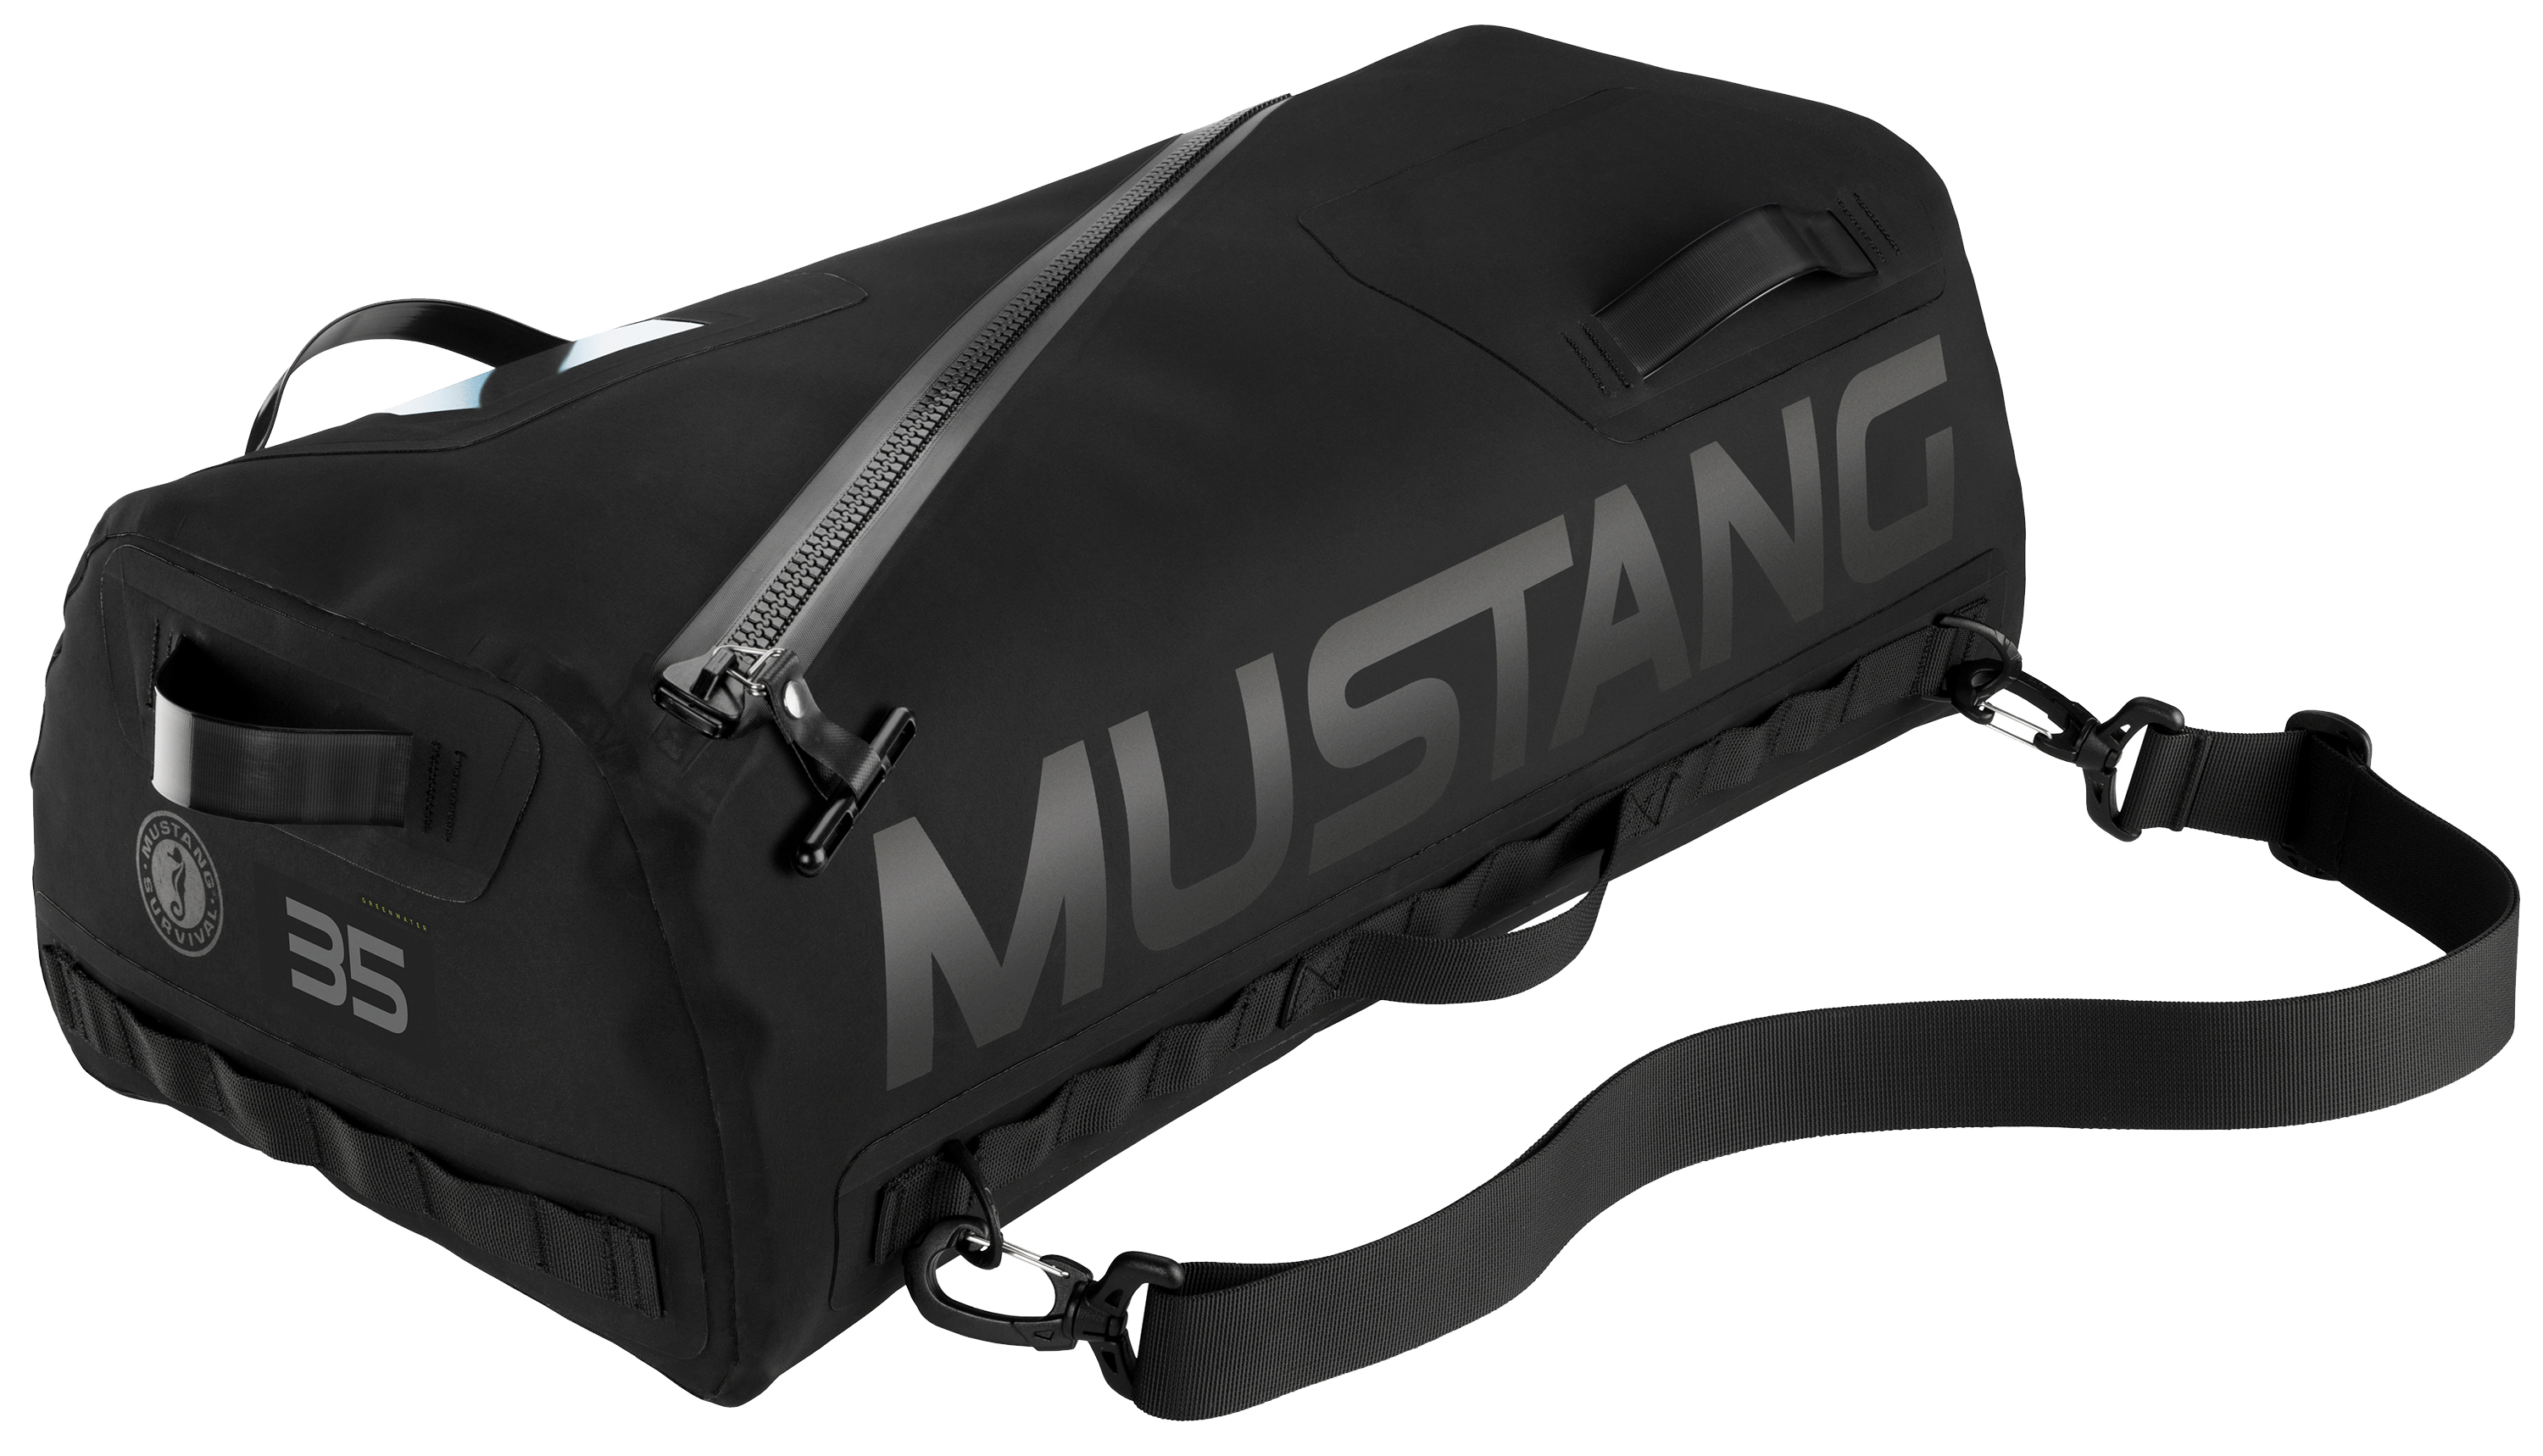 Greenwater 35 Waterproof Duffle Bag Black